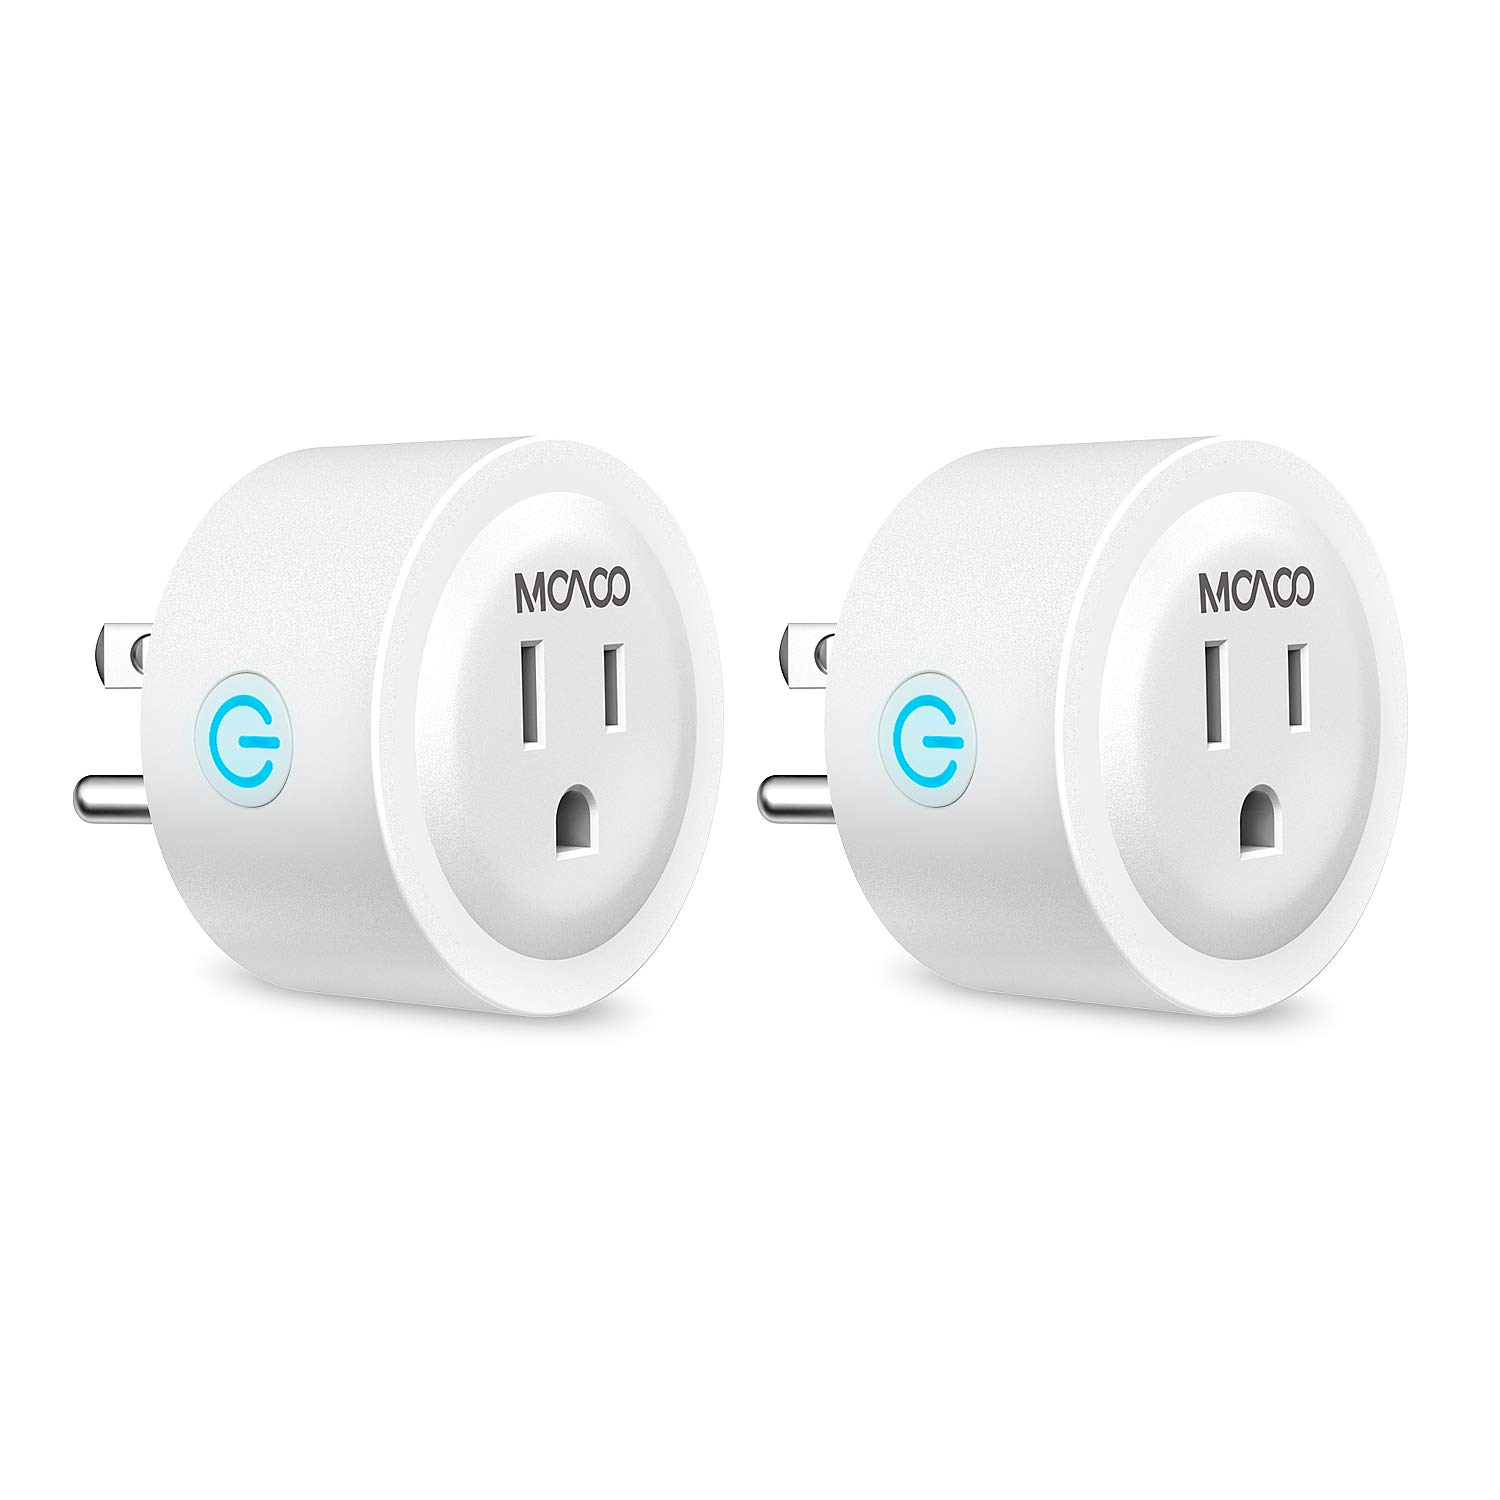 MOAOO Wi-Fi Smart Outlet, Mini Smart Plug Compatible with Alexa and Google Assistant, No Hub Required Timing Function, White, 2 Pack